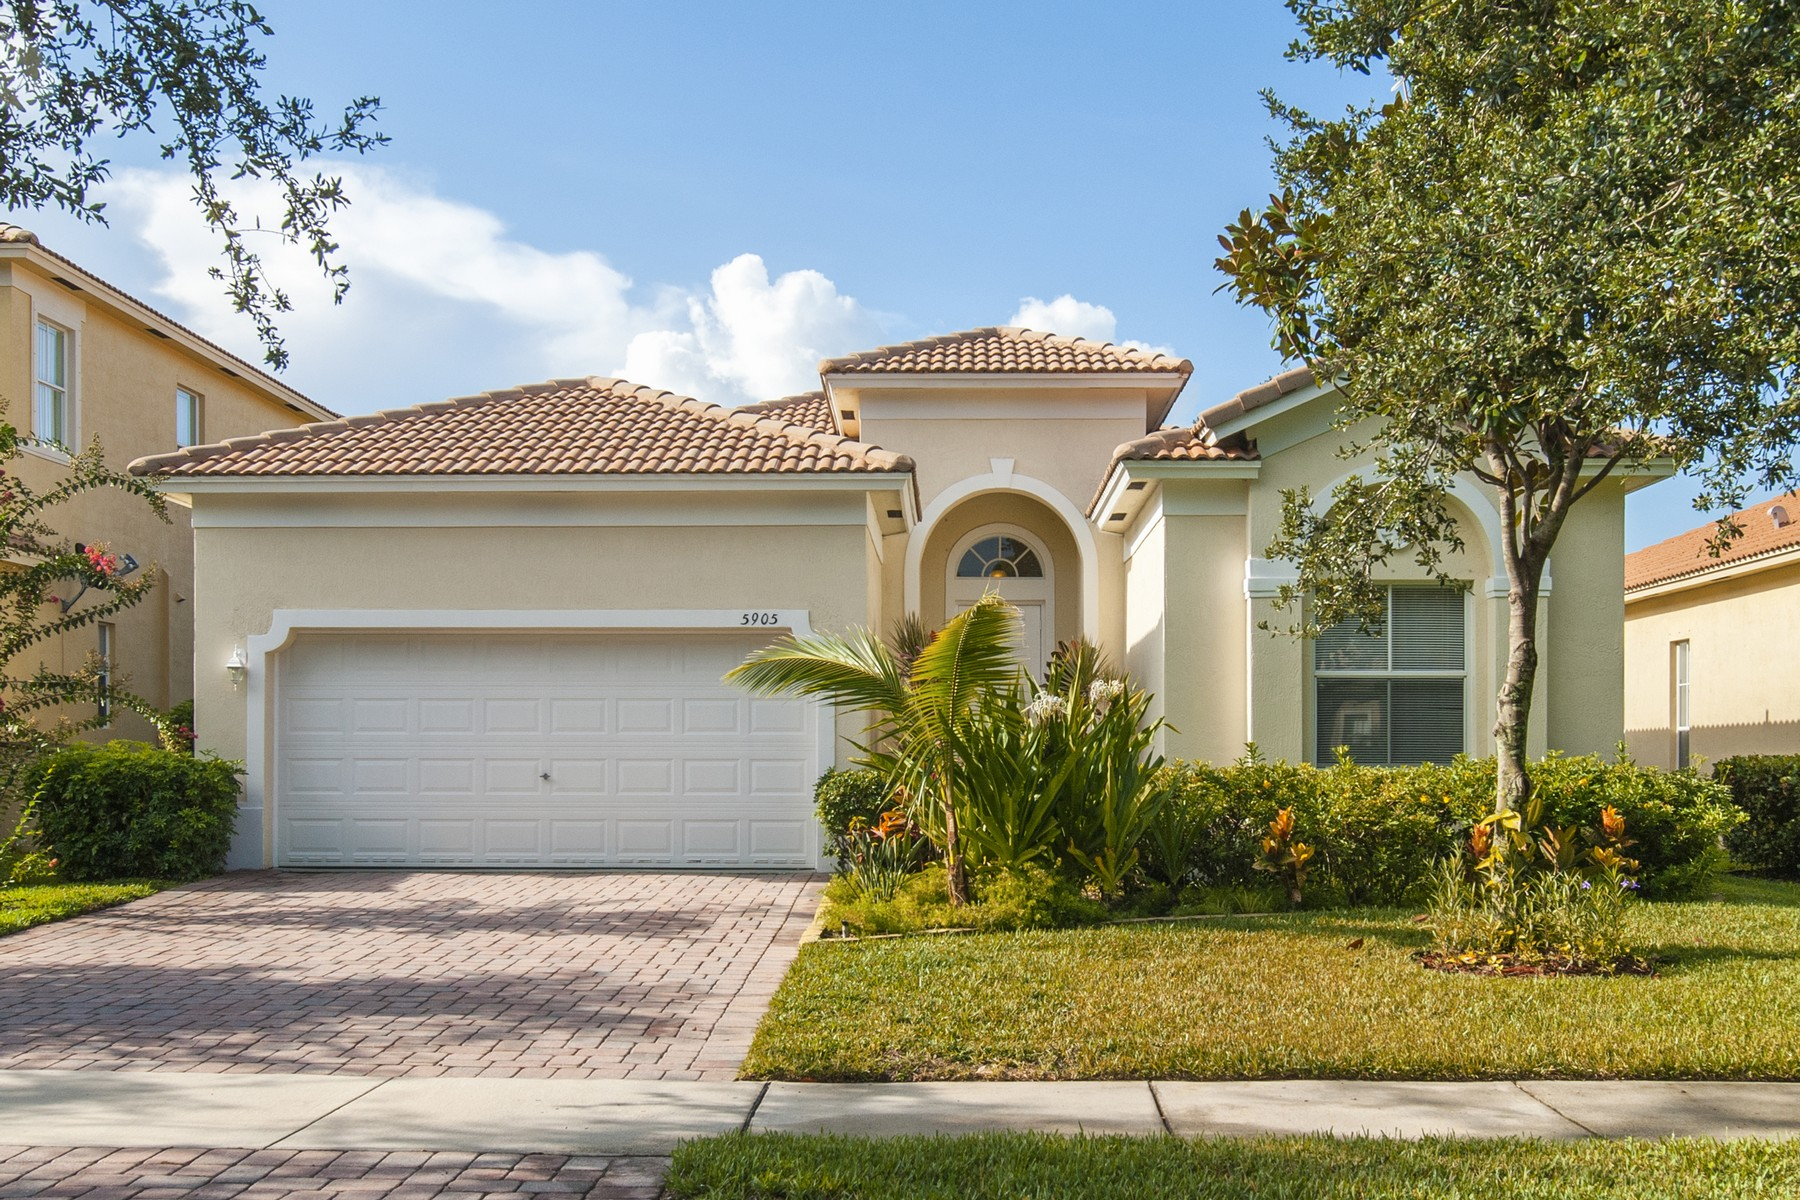 Property for Sale at Beautfully Maintained Home in Resort Style Gated Community 5905 Spring Lake Terrace Fort Pierce, Florida 34951 United States